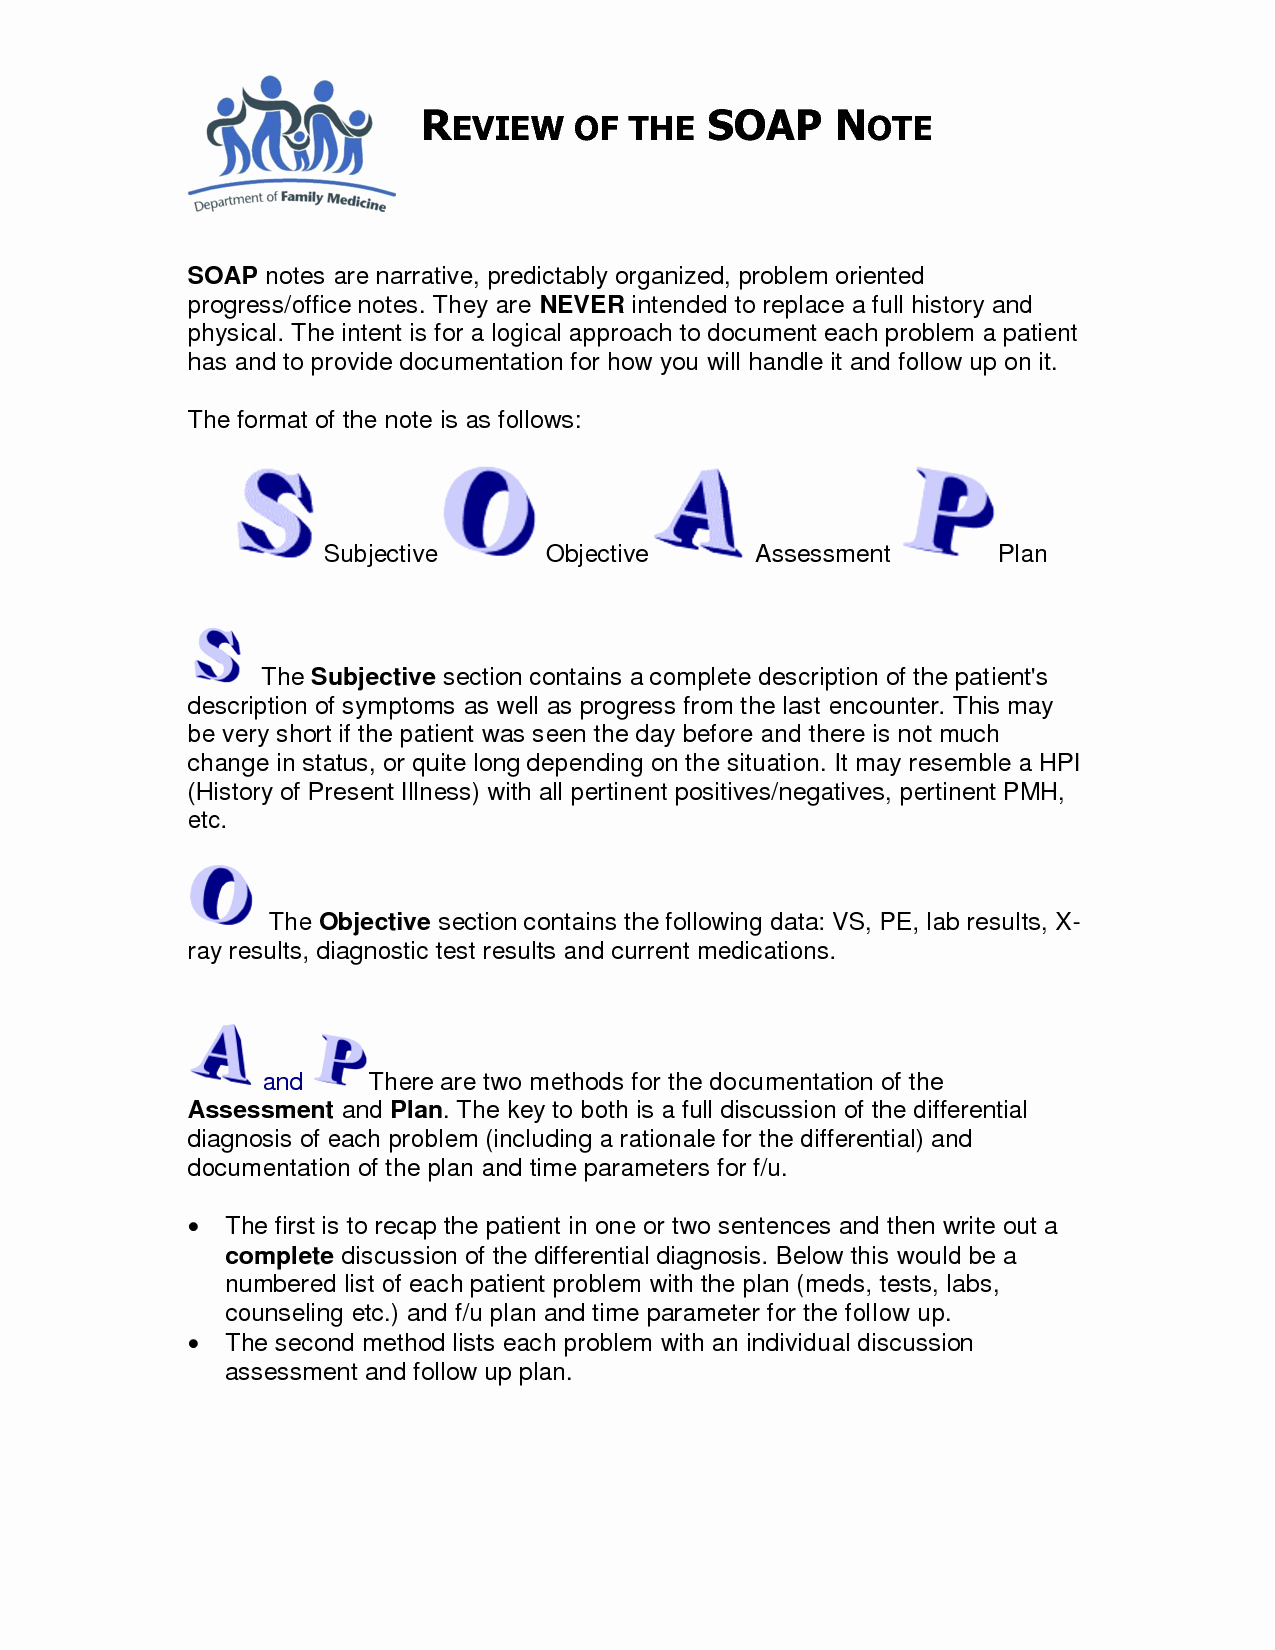 Blank soap Note Template Unique soap Note Template Counseling Google Search